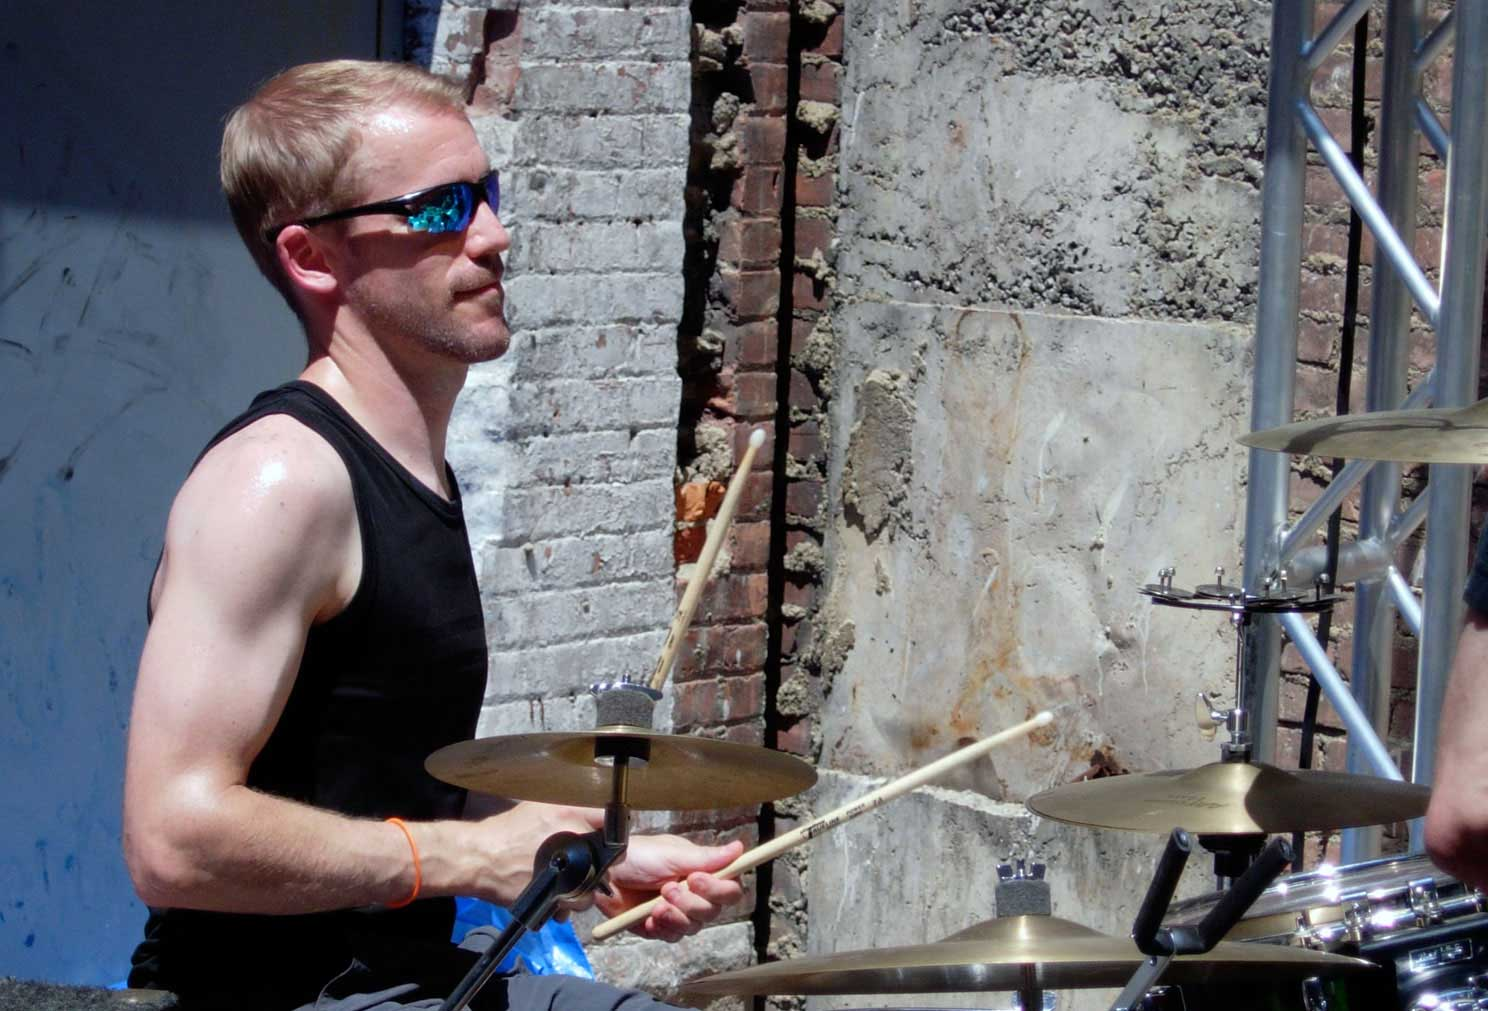 Chris Solt | drums, percussion, keyboard, guitar